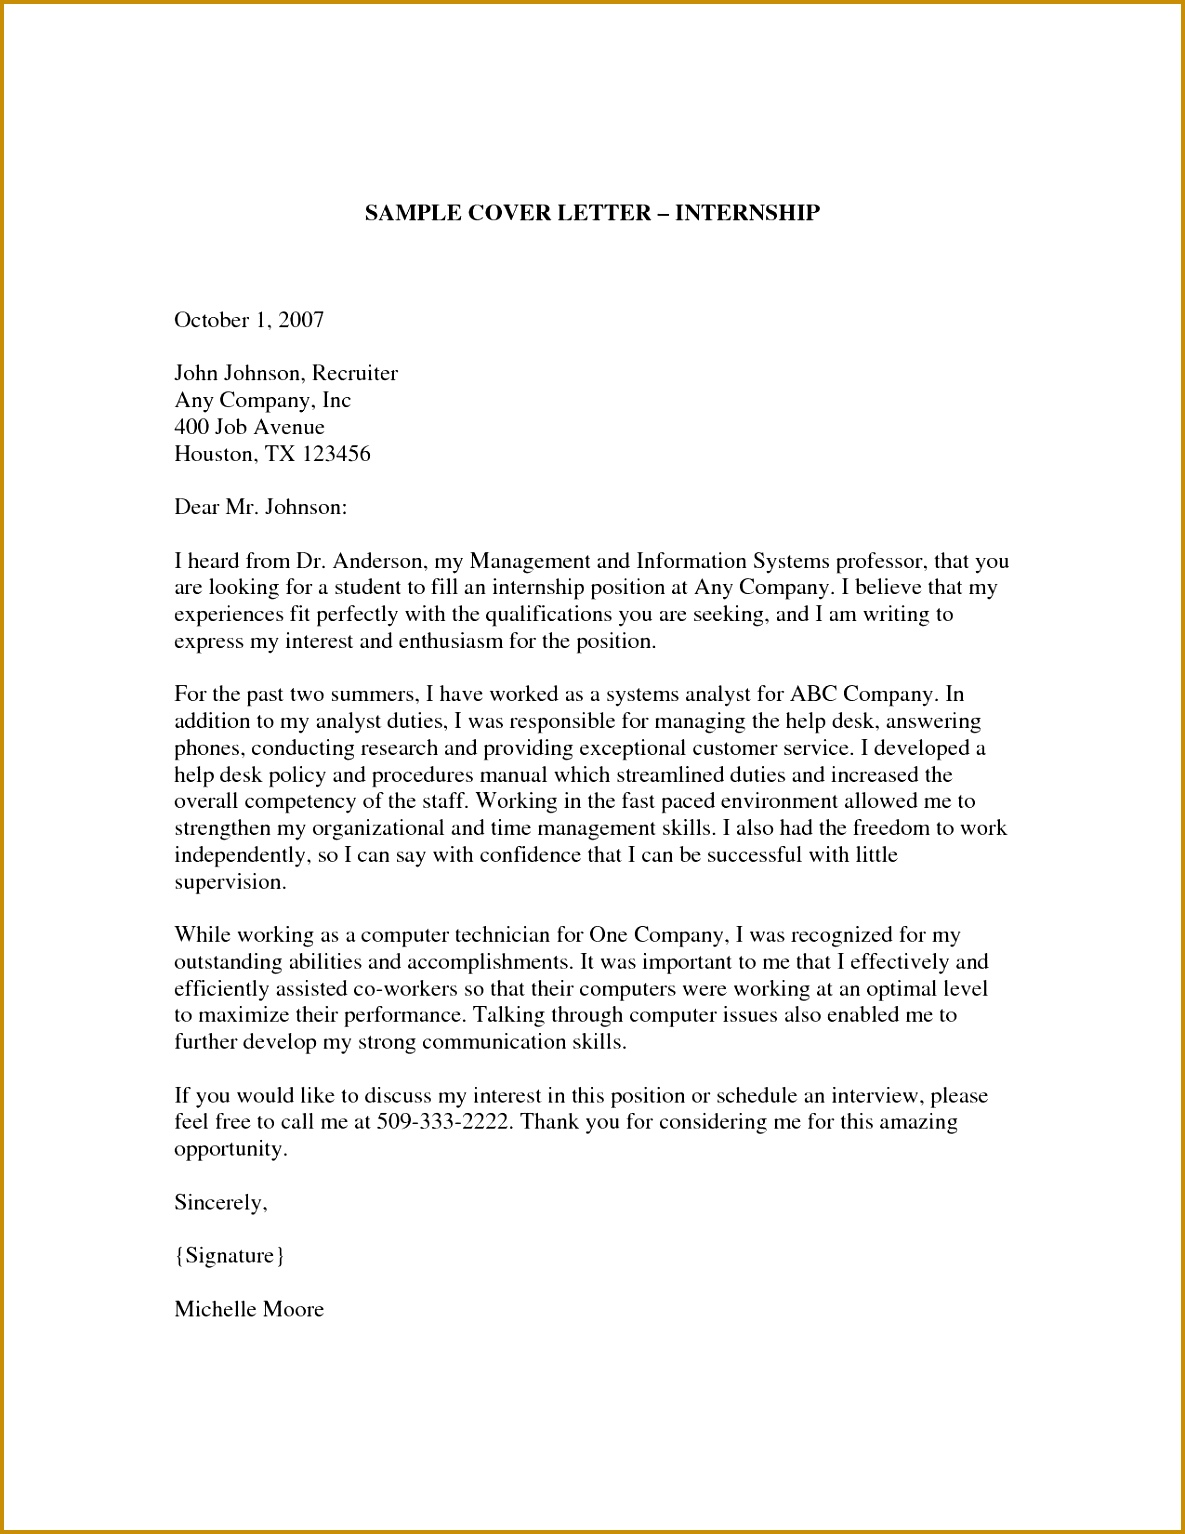 Cover Letter to Headhunter Sample Awesome Recruiter Cover Letter Lovely Od Consultant Cover Letter Capital 11851534